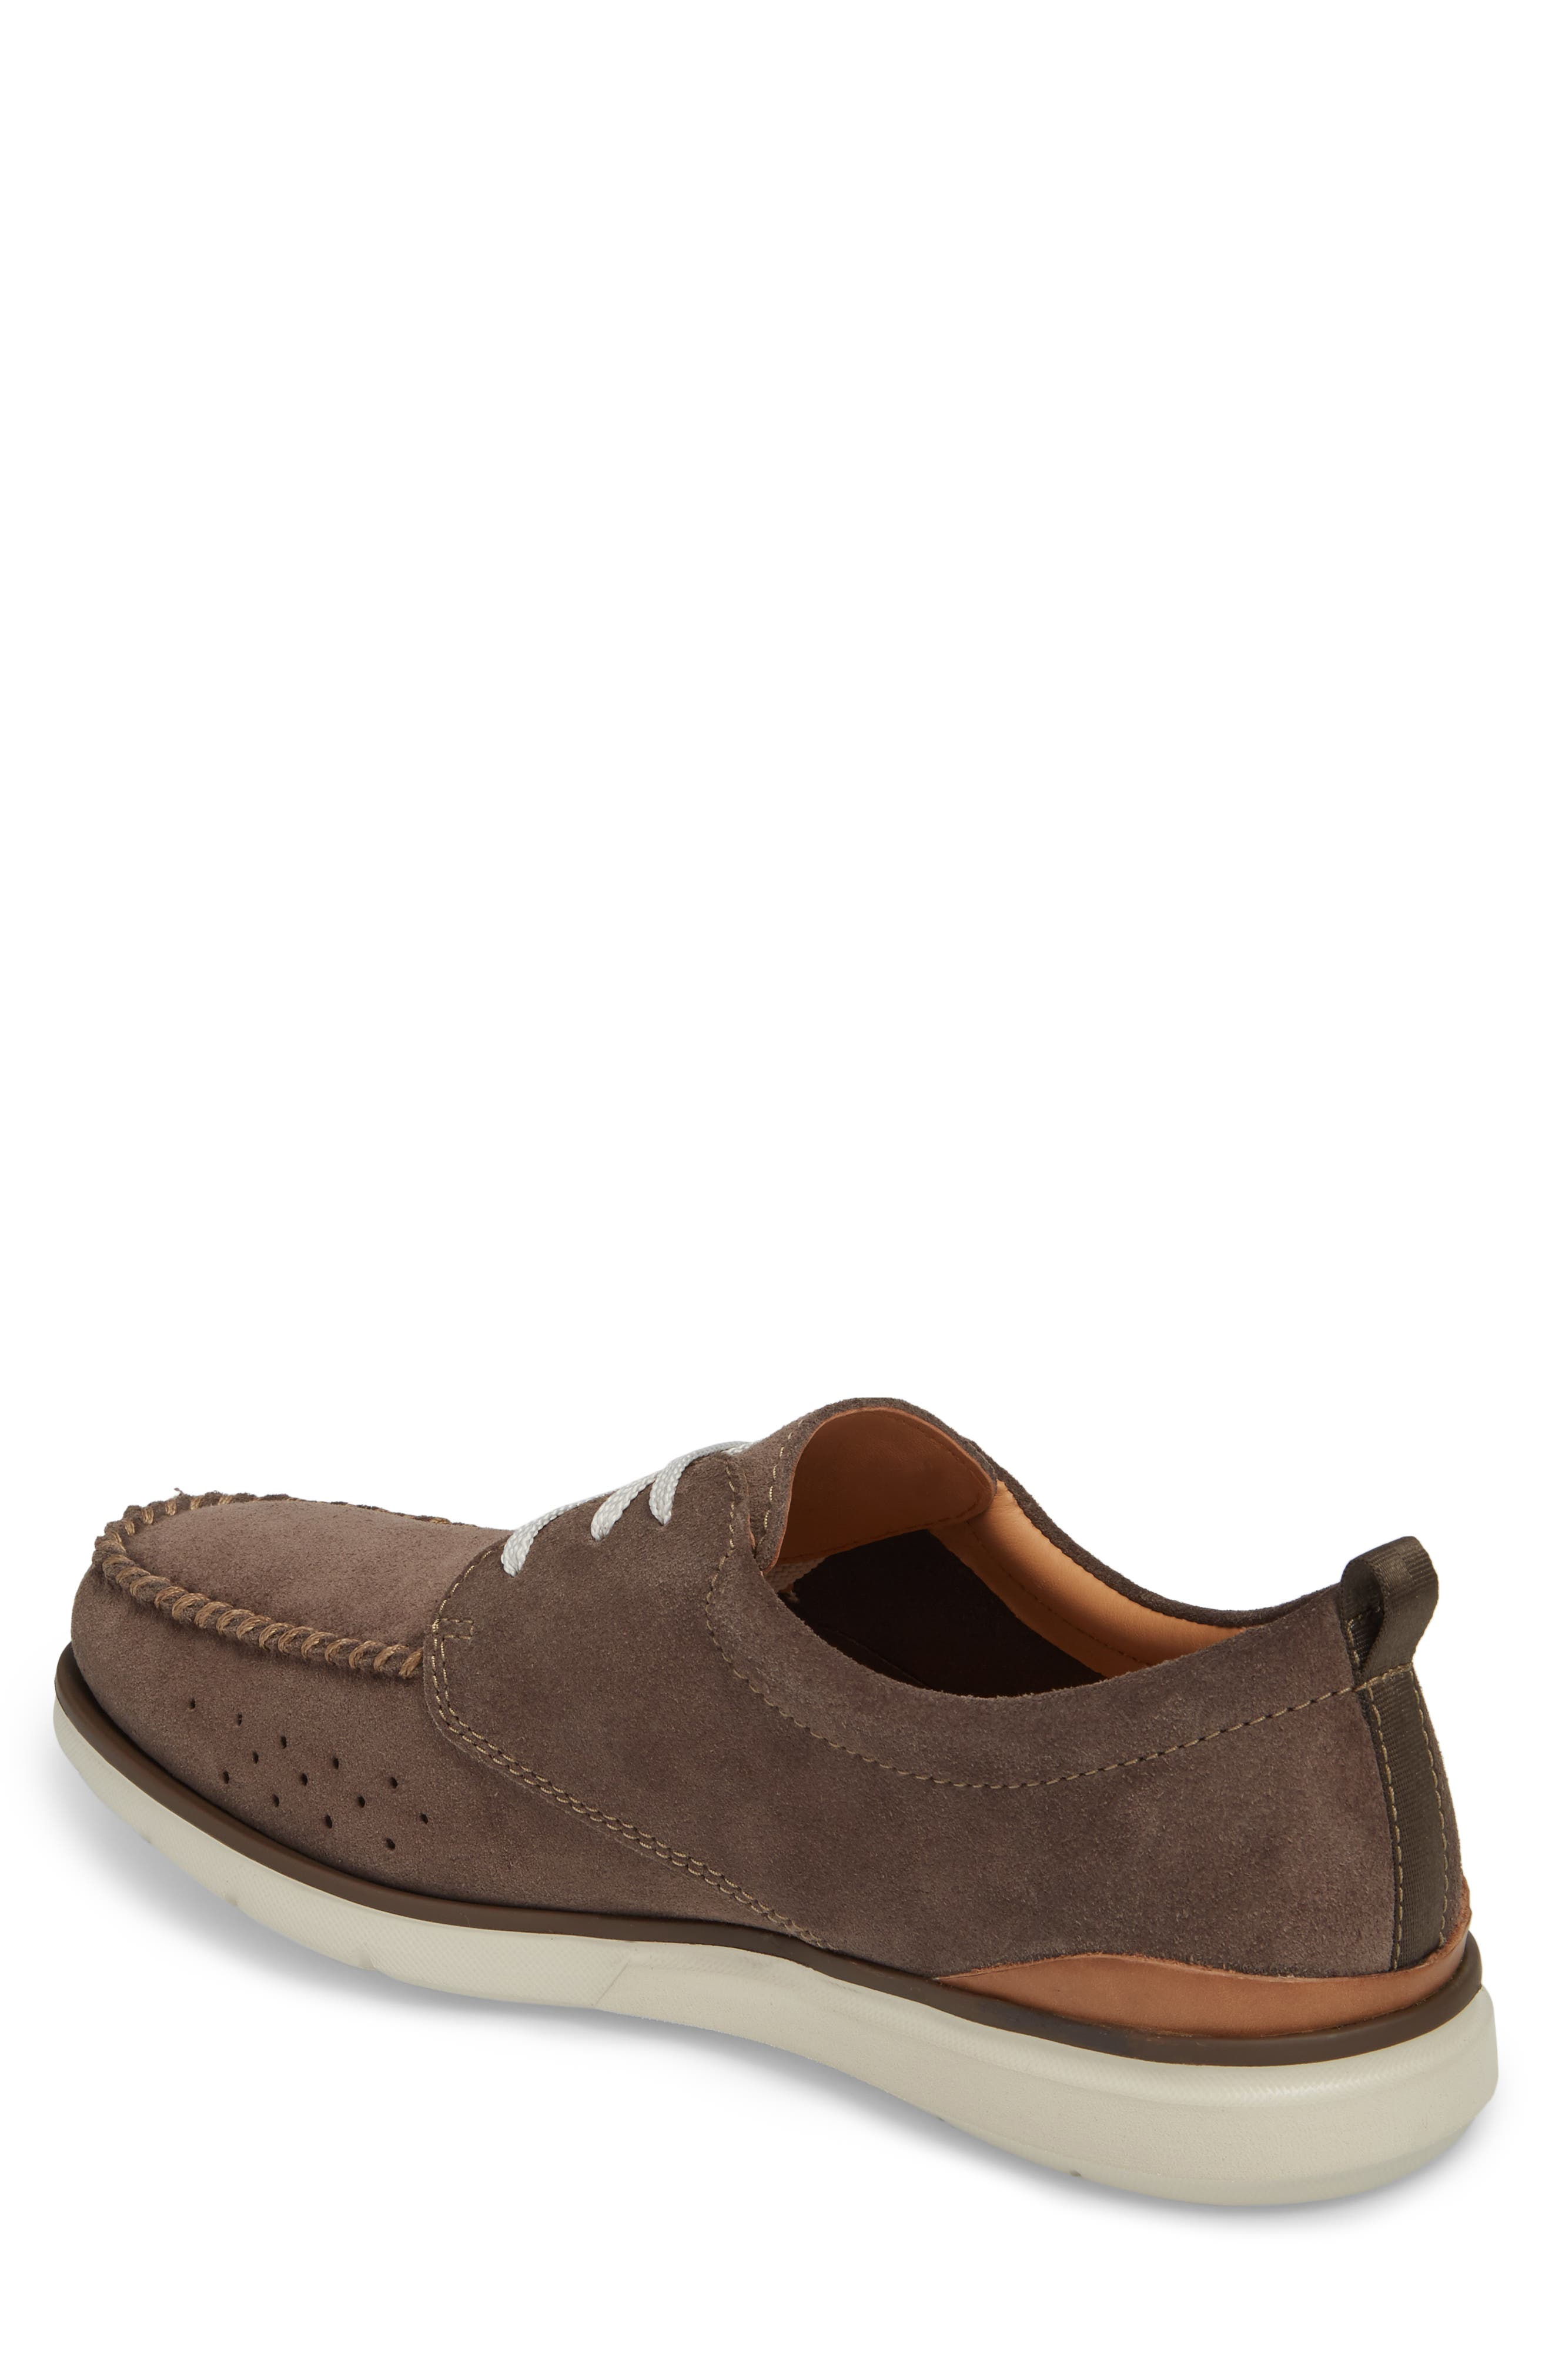 Edgewood Mix Moc Toe Derby,                             Alternate thumbnail 2, color,                             Taupe Suede